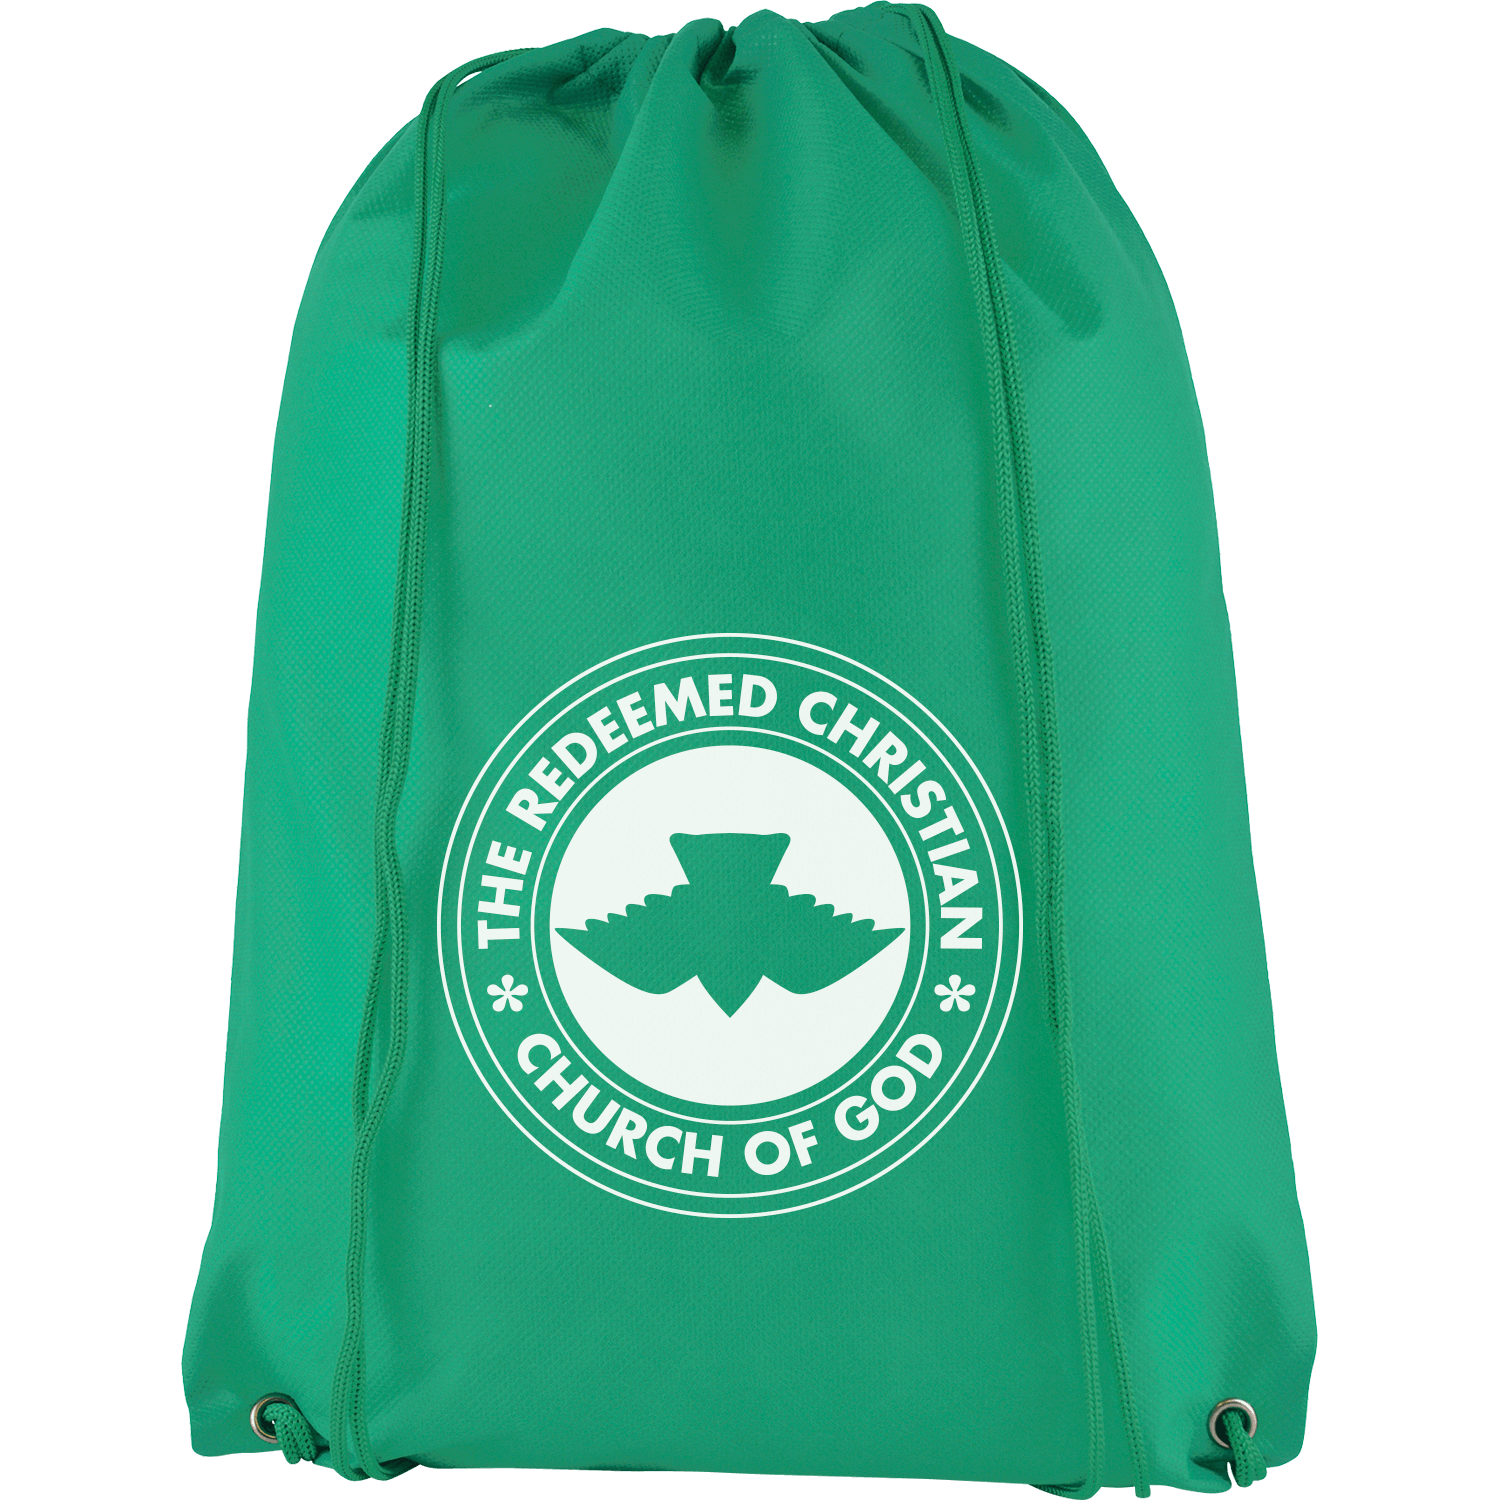 Recycled Non-Woven Drawstring Bag